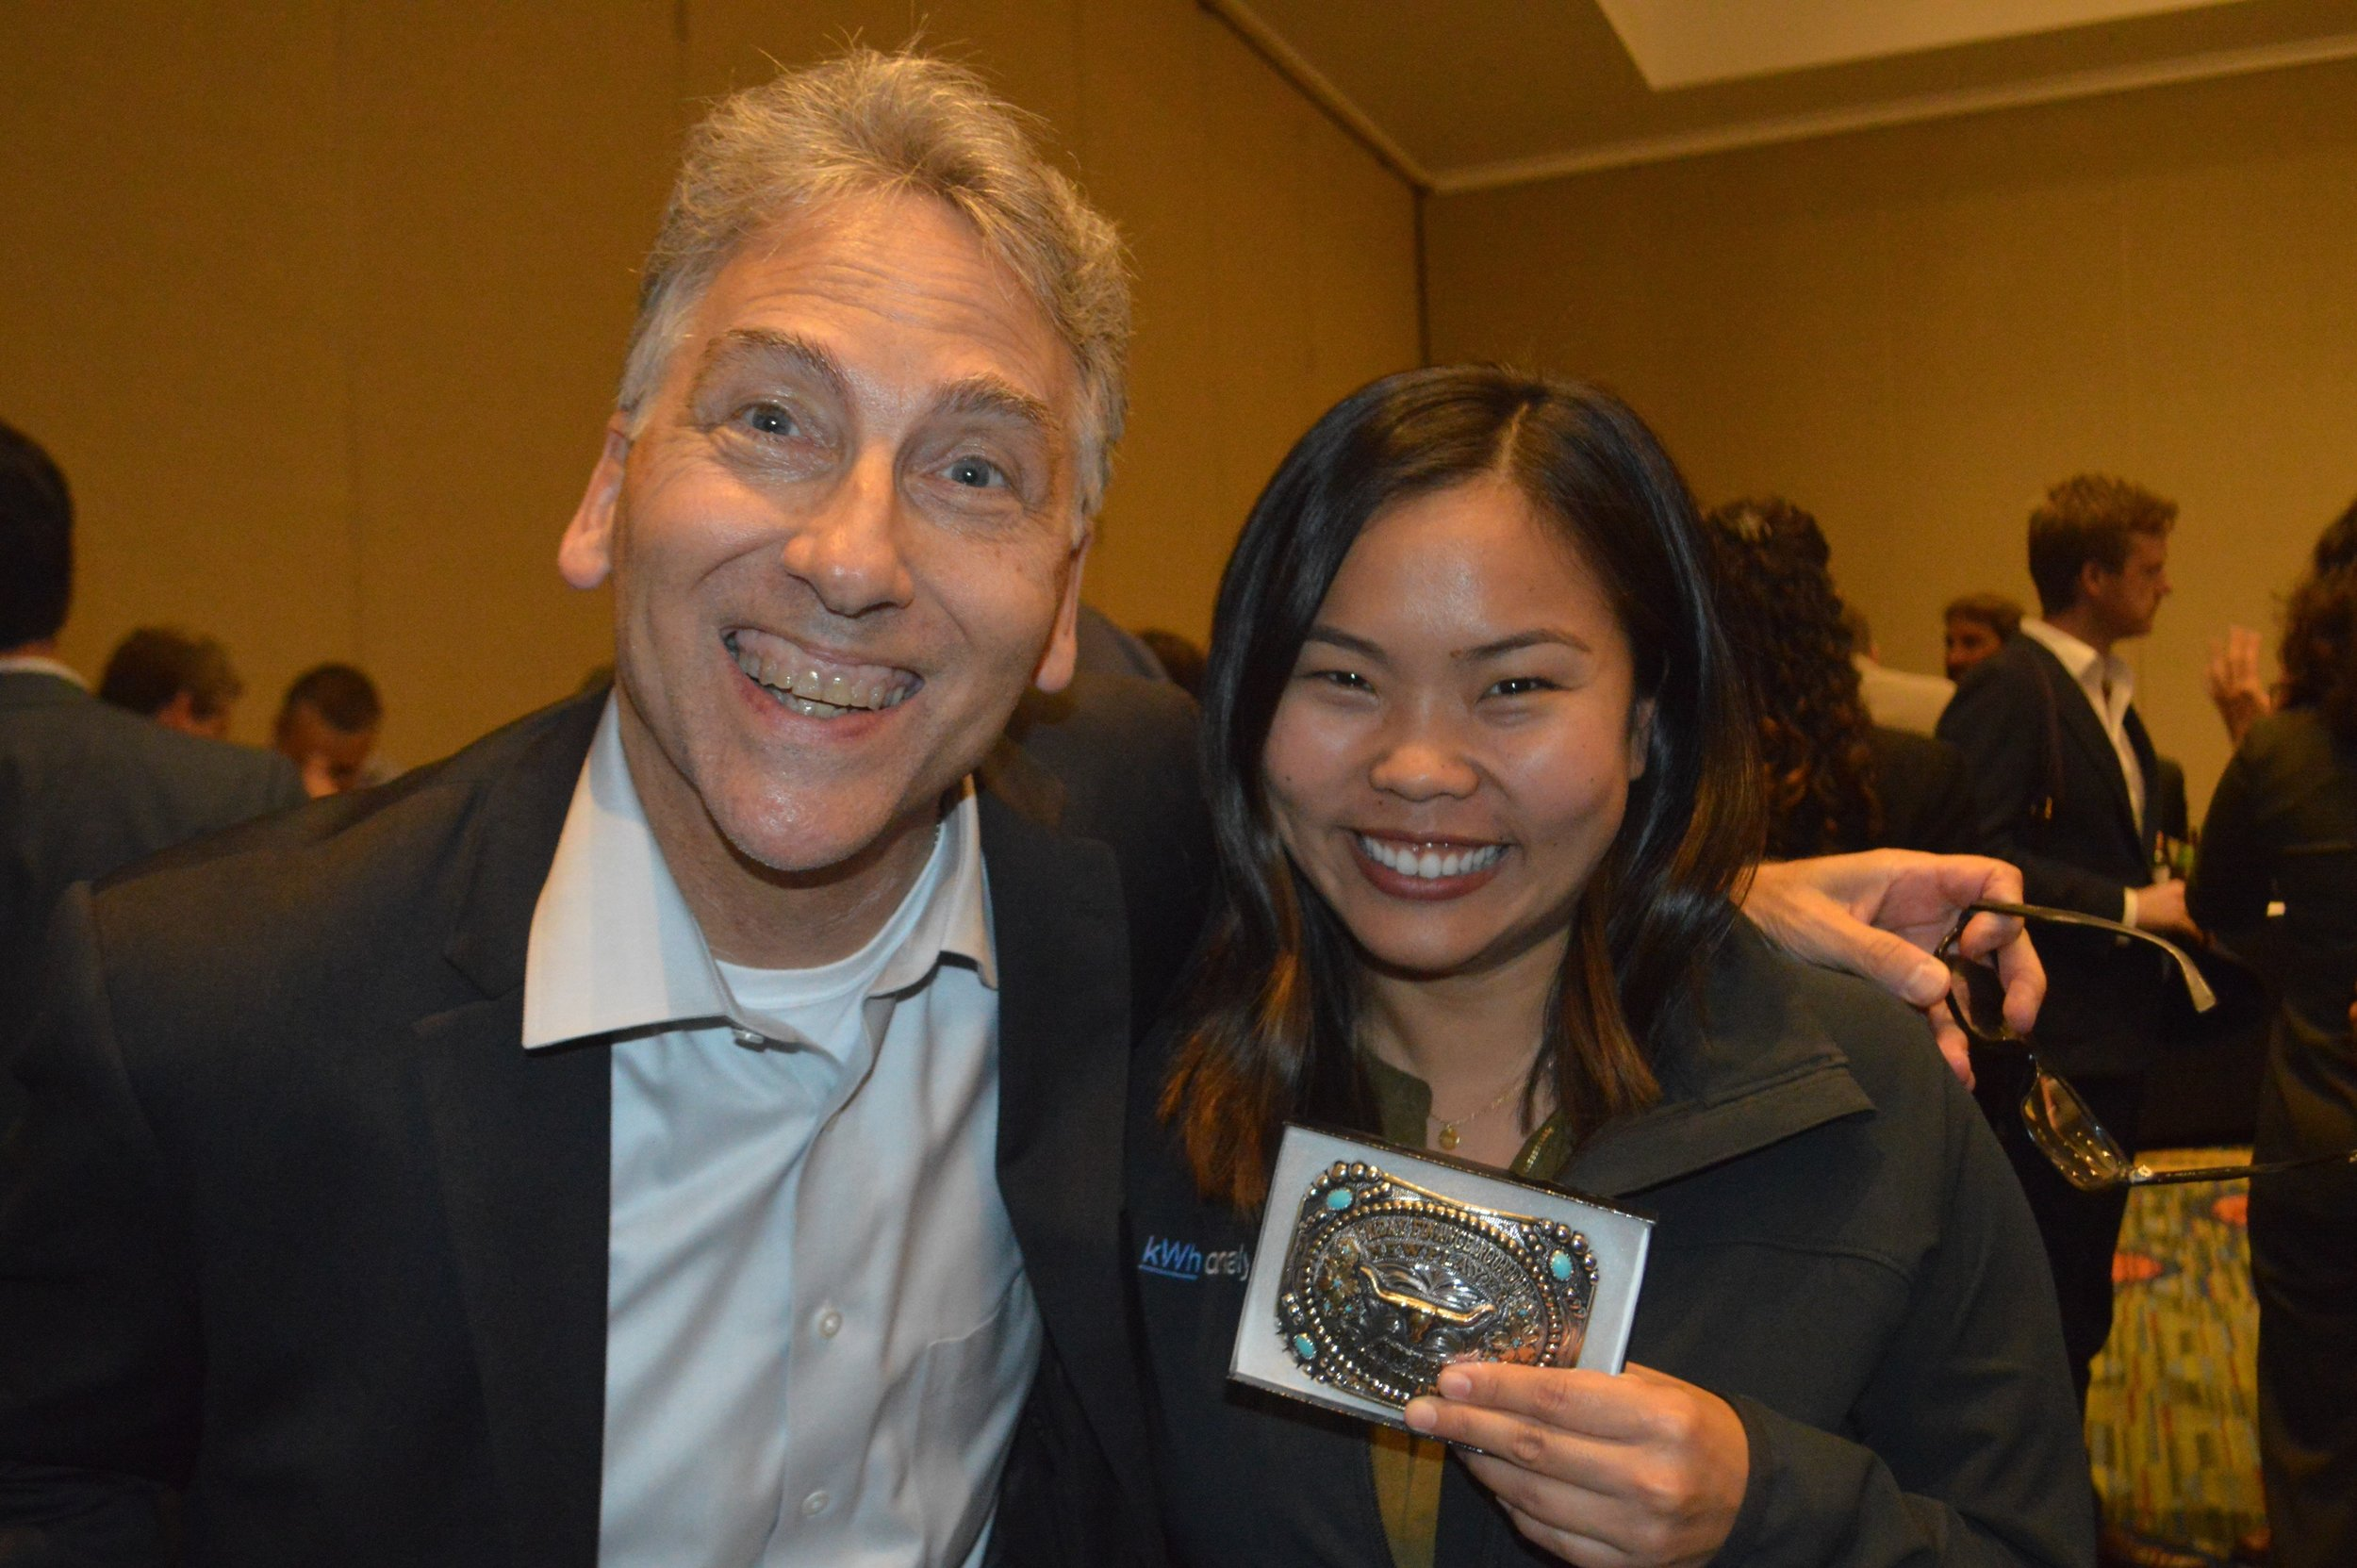 Dan Carol, the Senior Advisor of Infrastructure and Energy for the Office of Governor Jerry Brown, presented kWh Analytics team member Sarah Matsui with the Global Climate Action Summit's 2018 Finance Innovation Award.